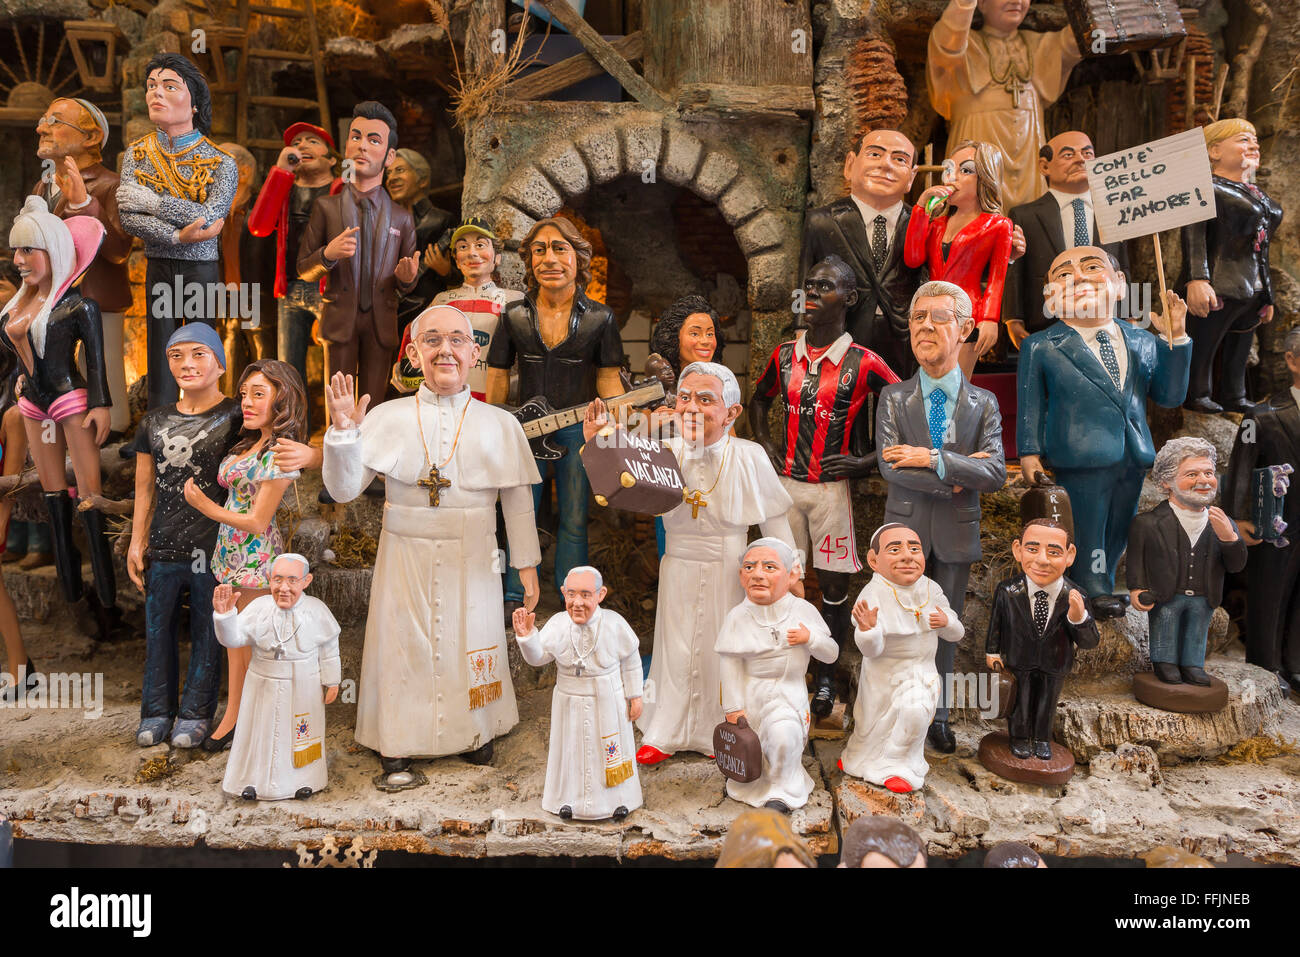 Naples crib shop, a group of colourful celebrity figurines crafted by artisans in a crib shop in the Via San Gregorio - Stock Image